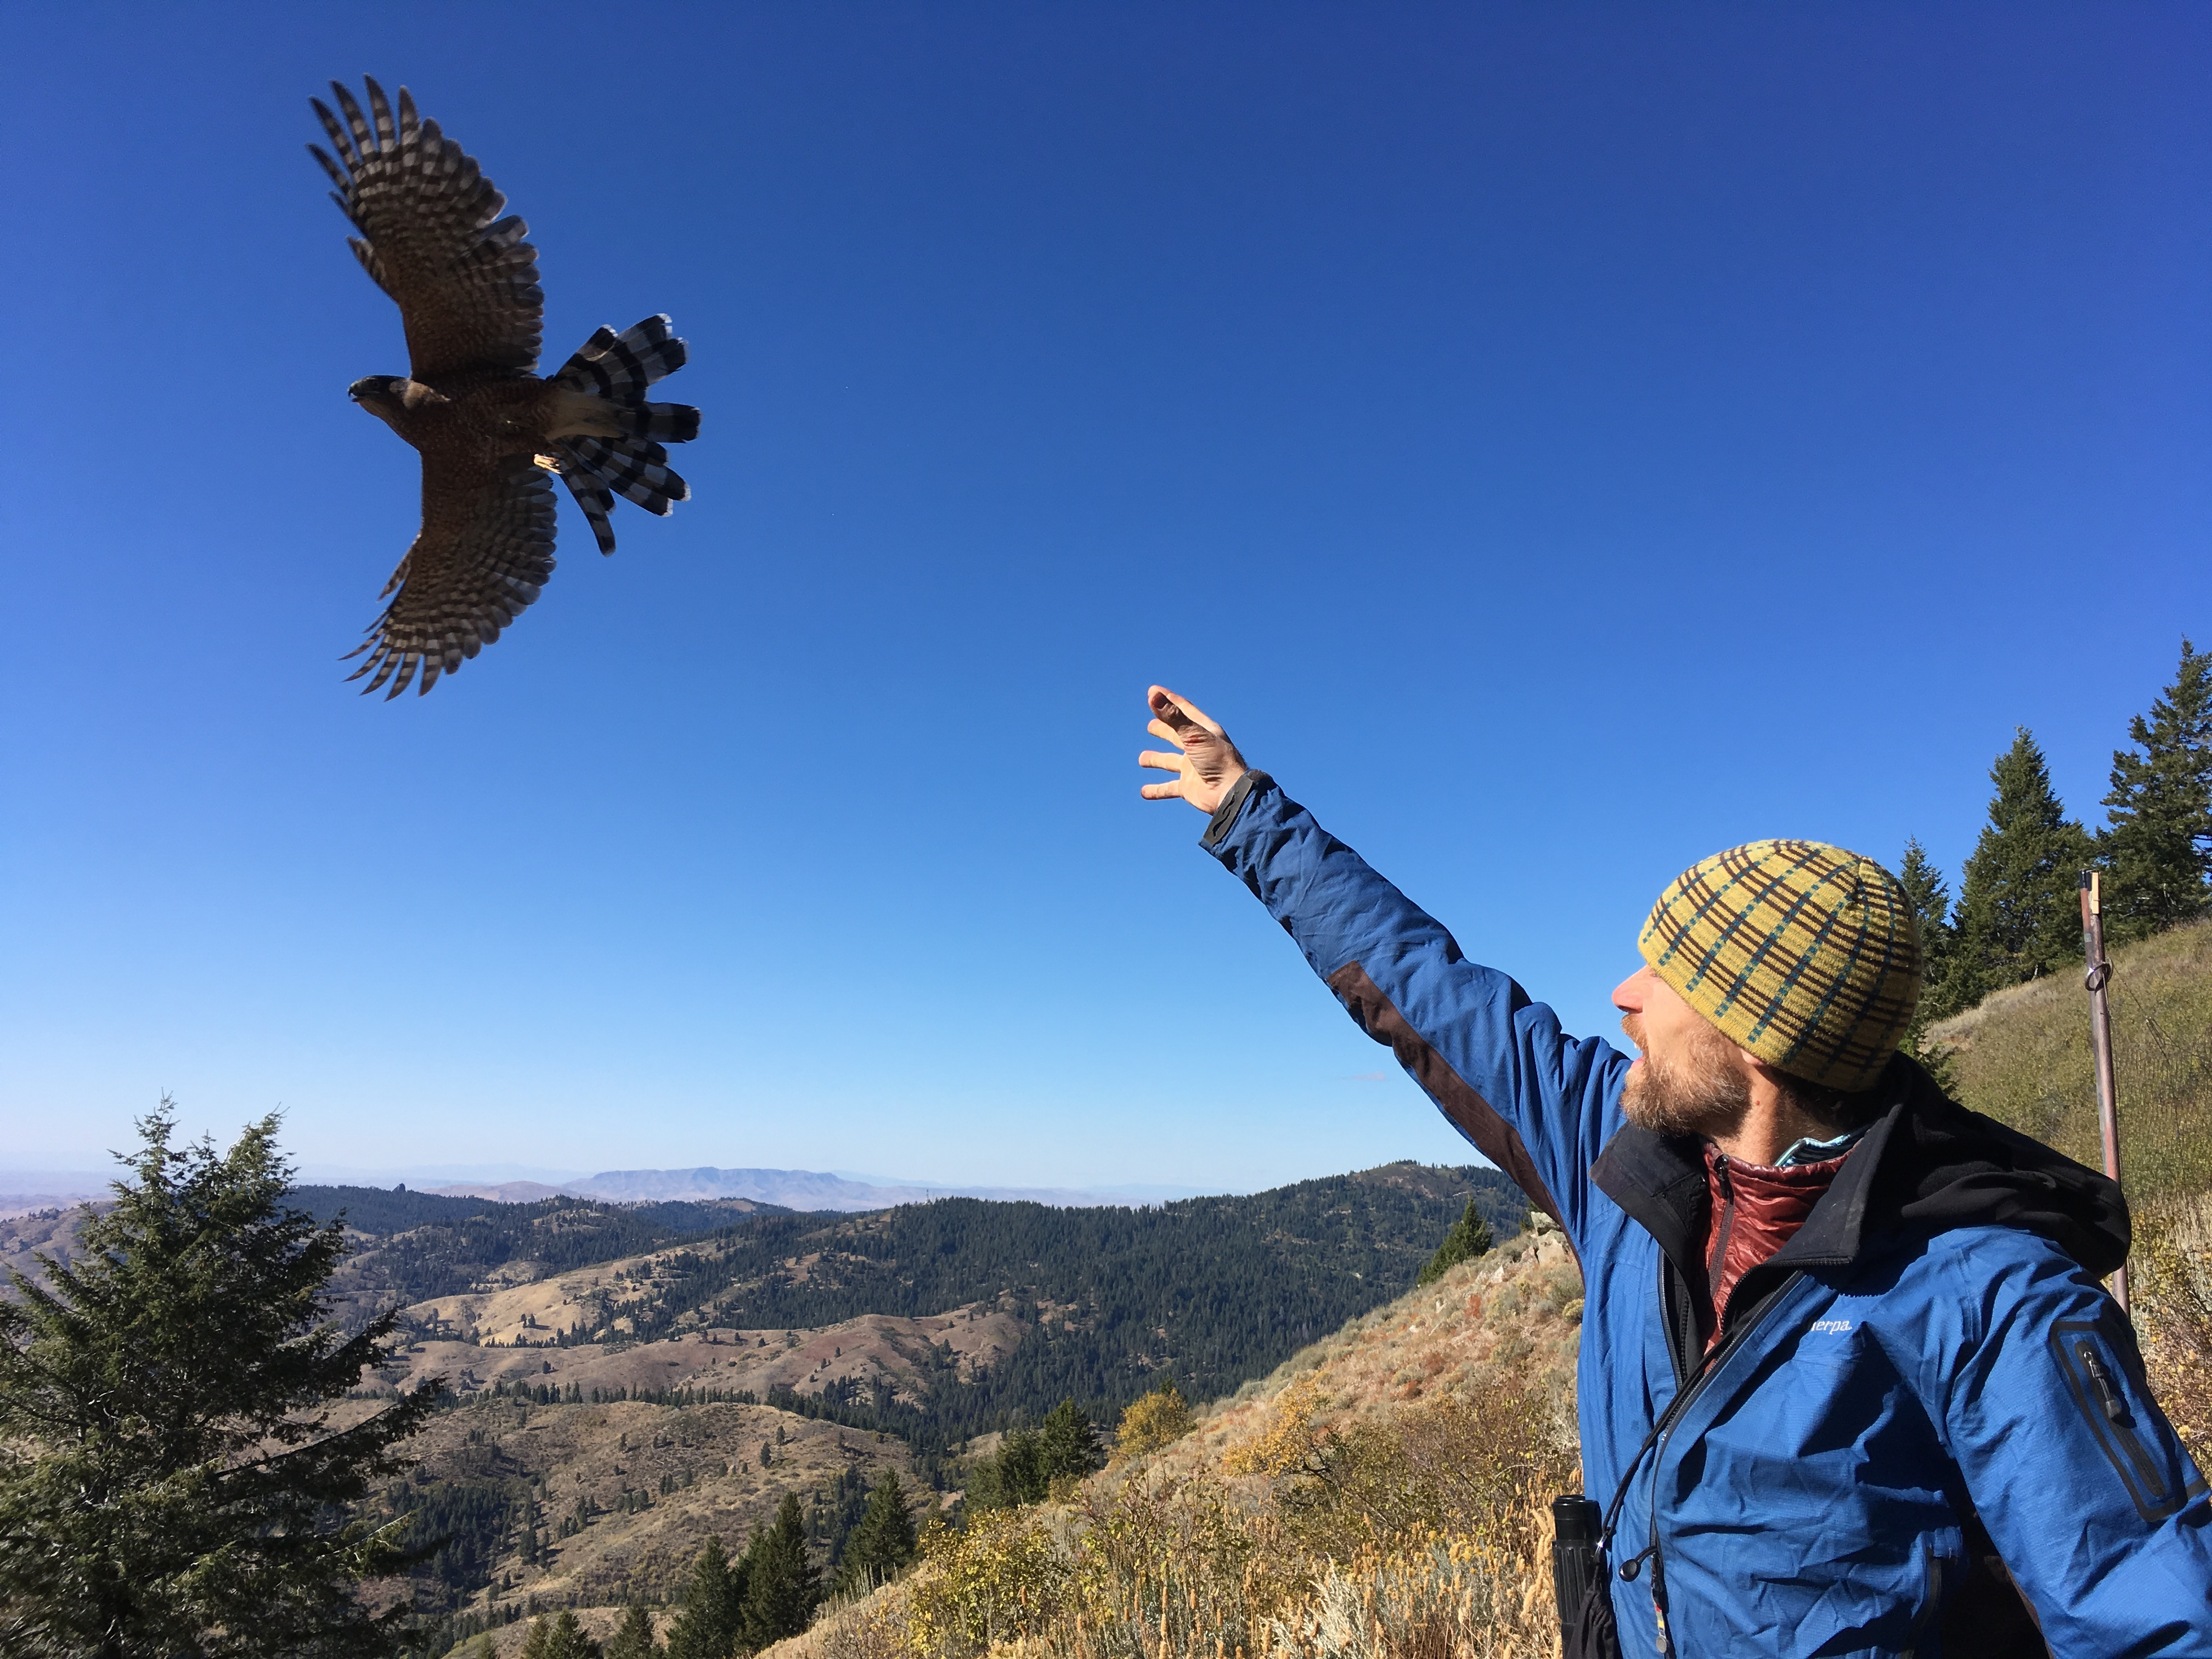 a man stands with arm outstretched and hand open. A Cooper's Hawk spreads its wings in flight in front of him